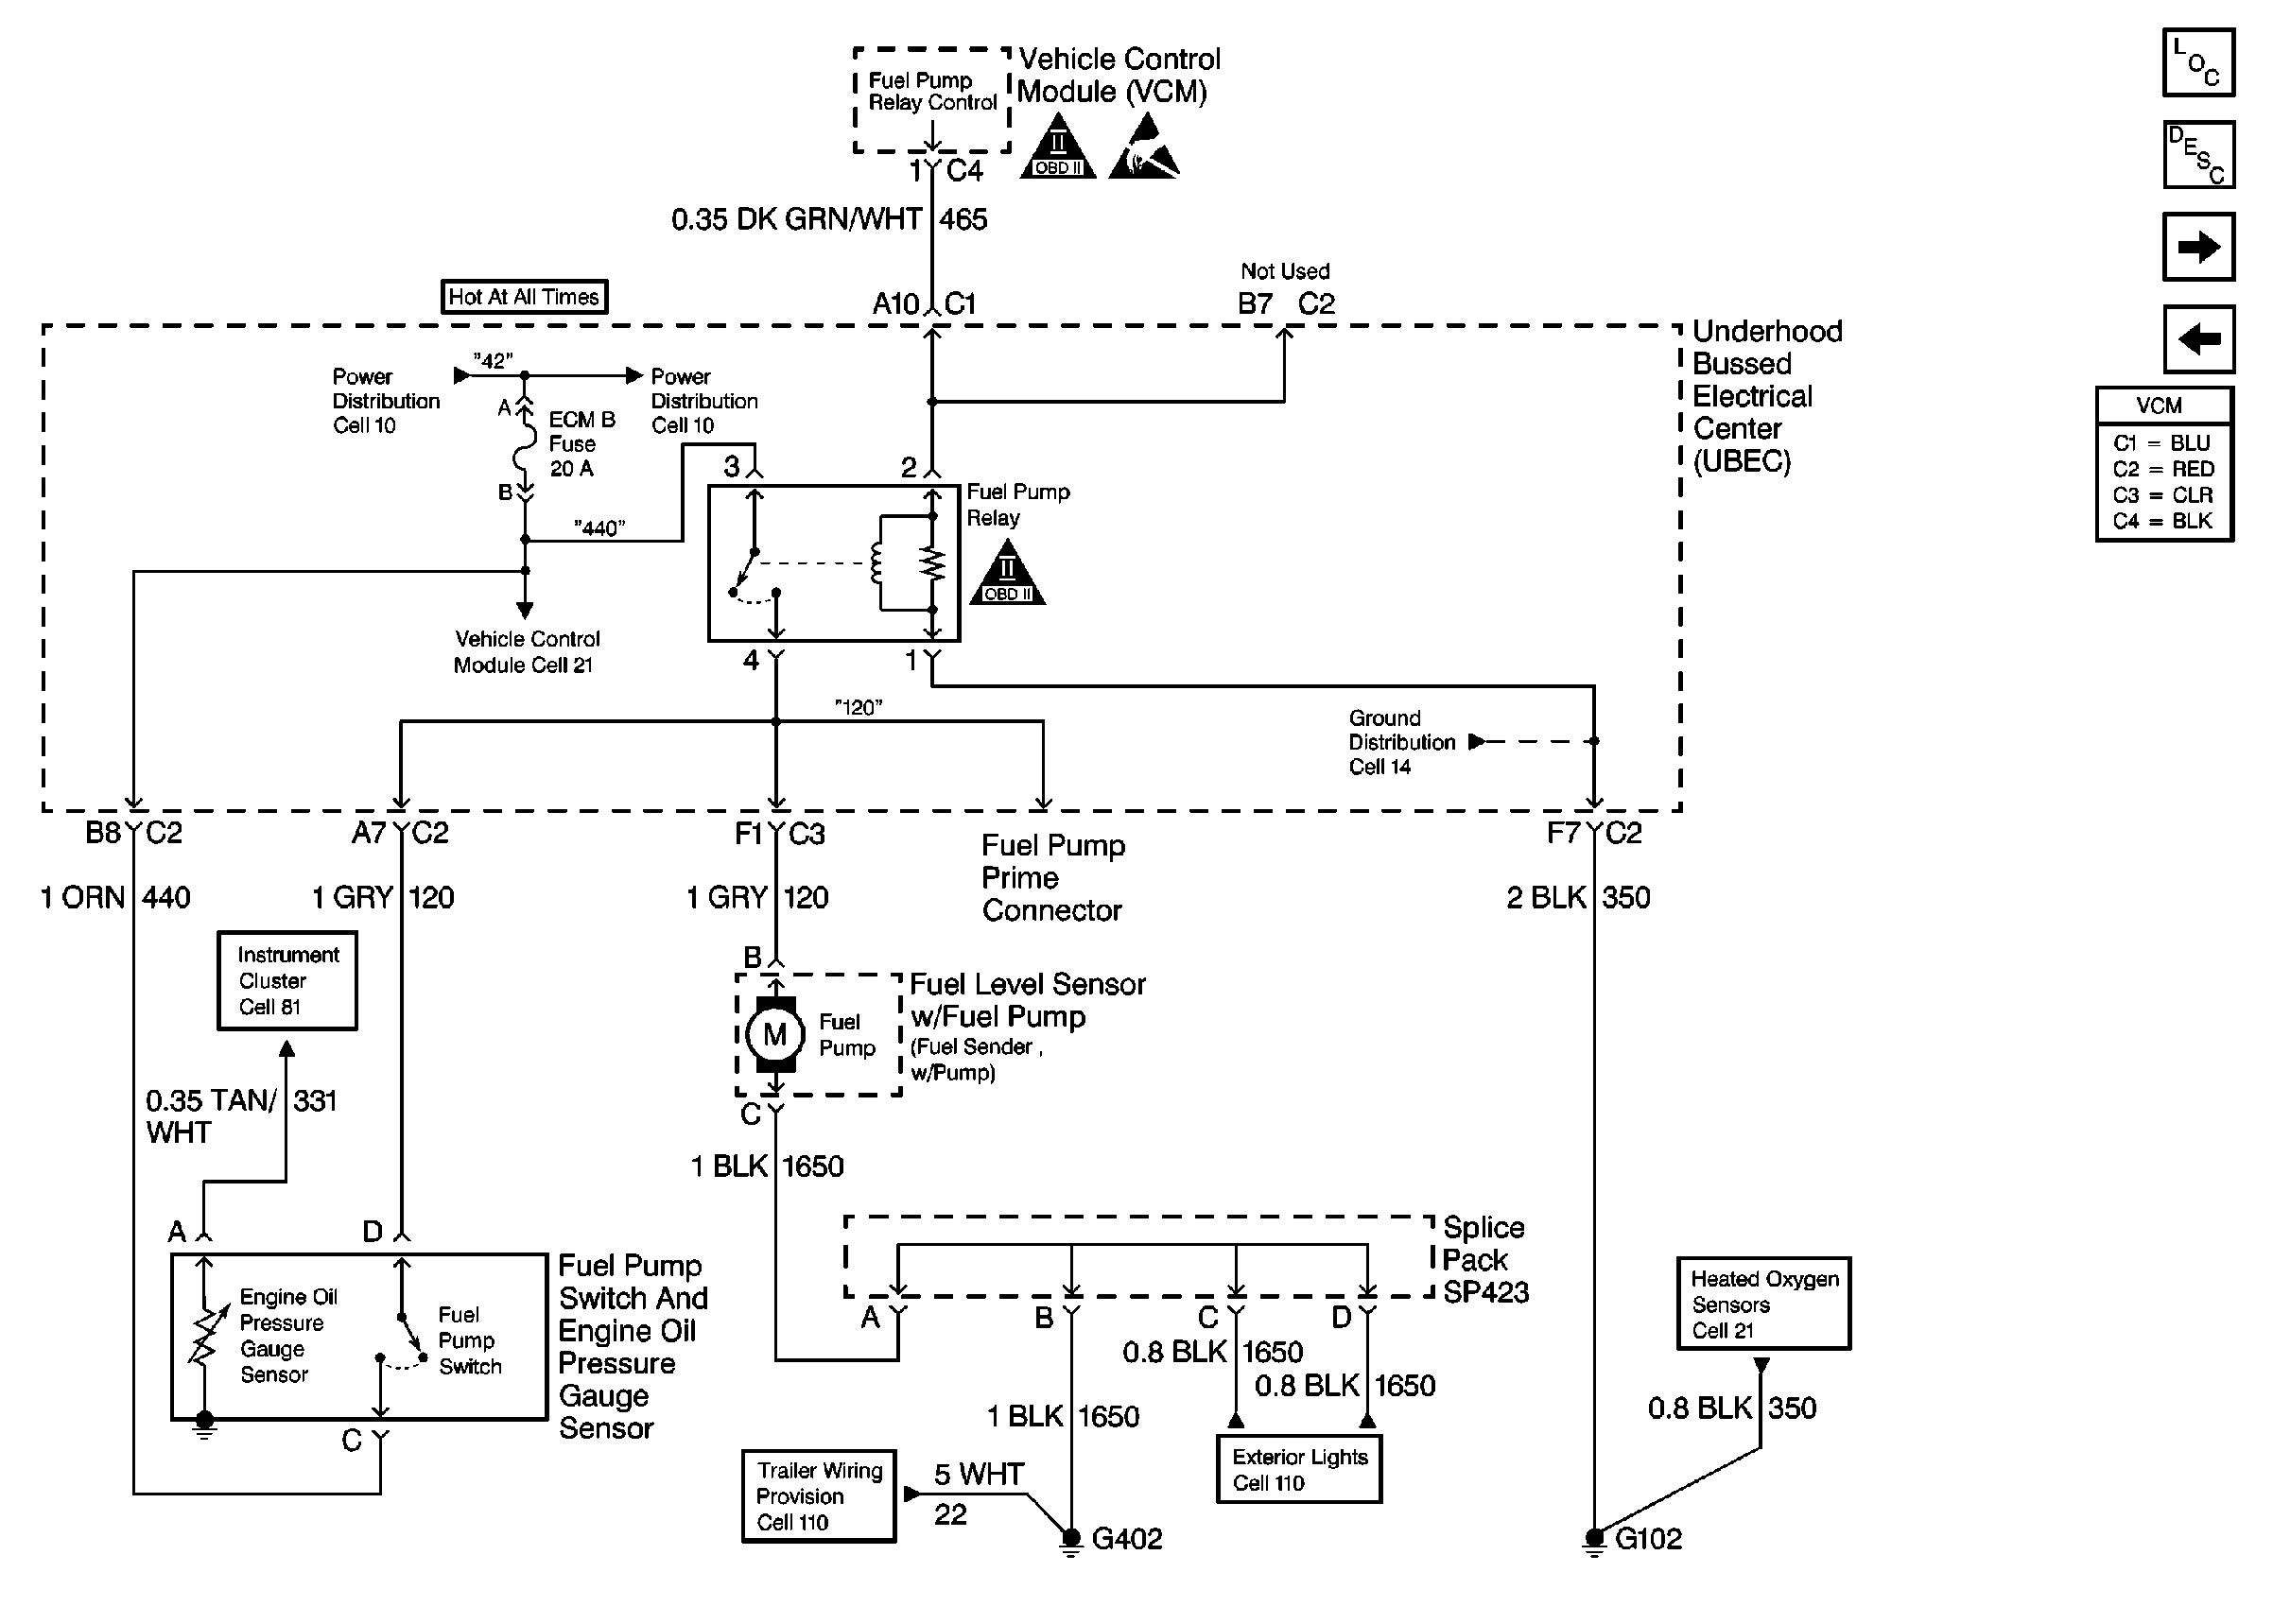 1998 Gmc Electrical Diagram Introduction To Wiring 1975 Jimmy 2001 Fuel Pump Smart Diagrams U2022 Rh Emgsolutions Co